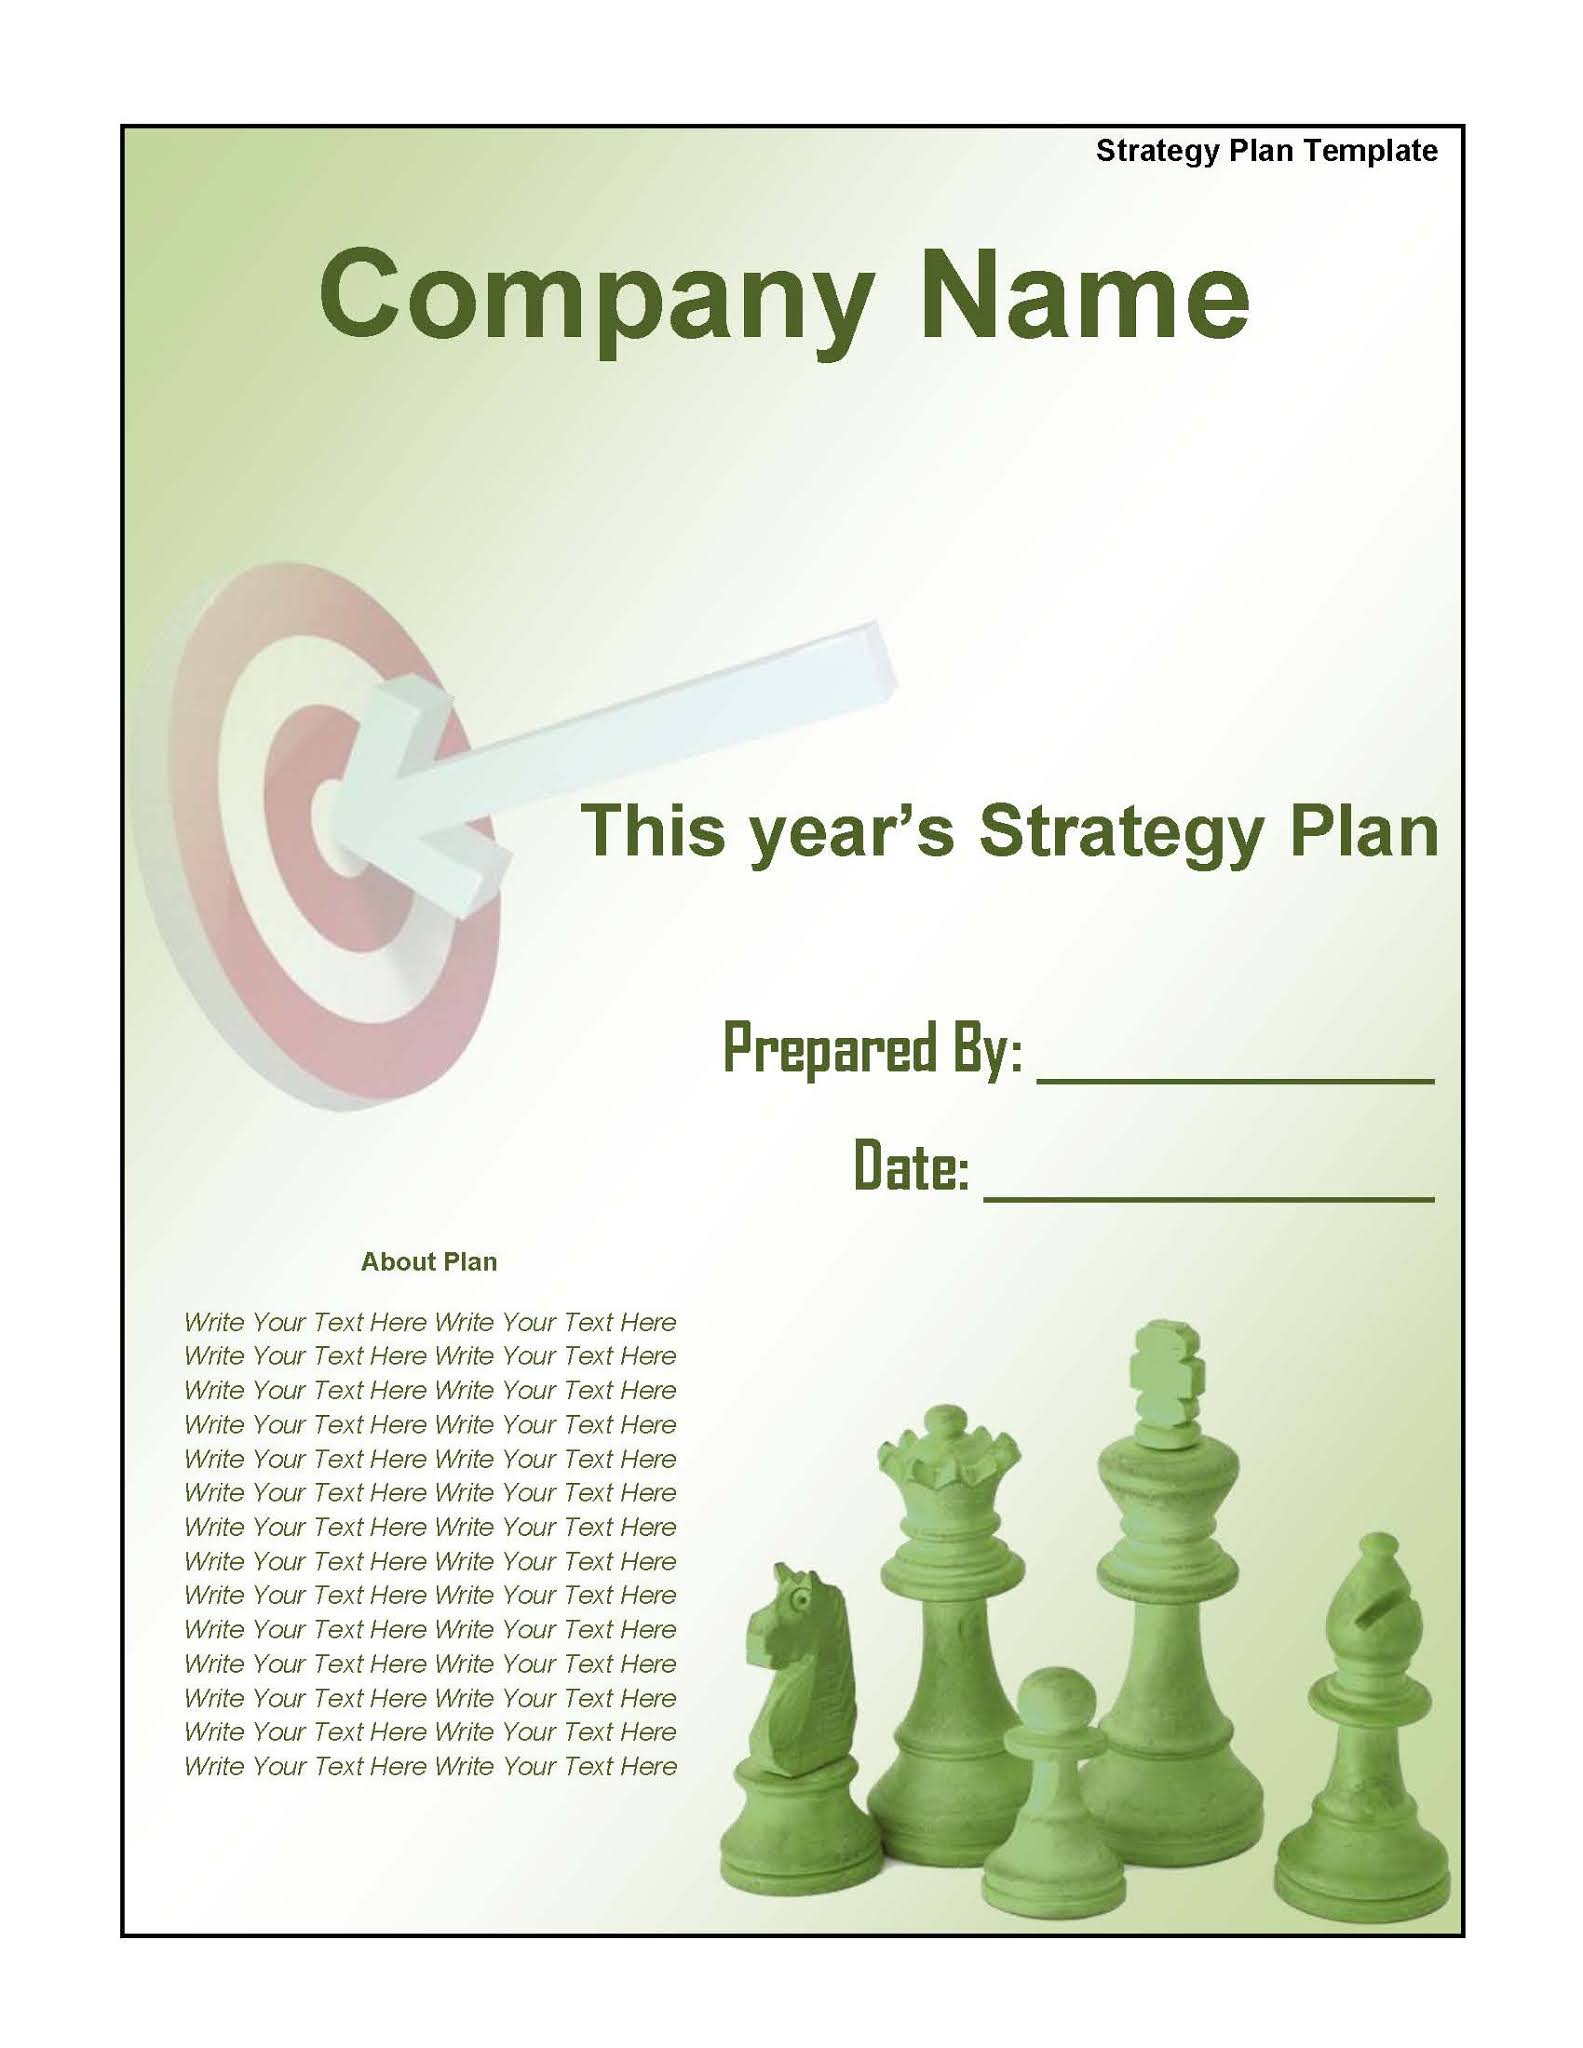 Strategy business plan template in word